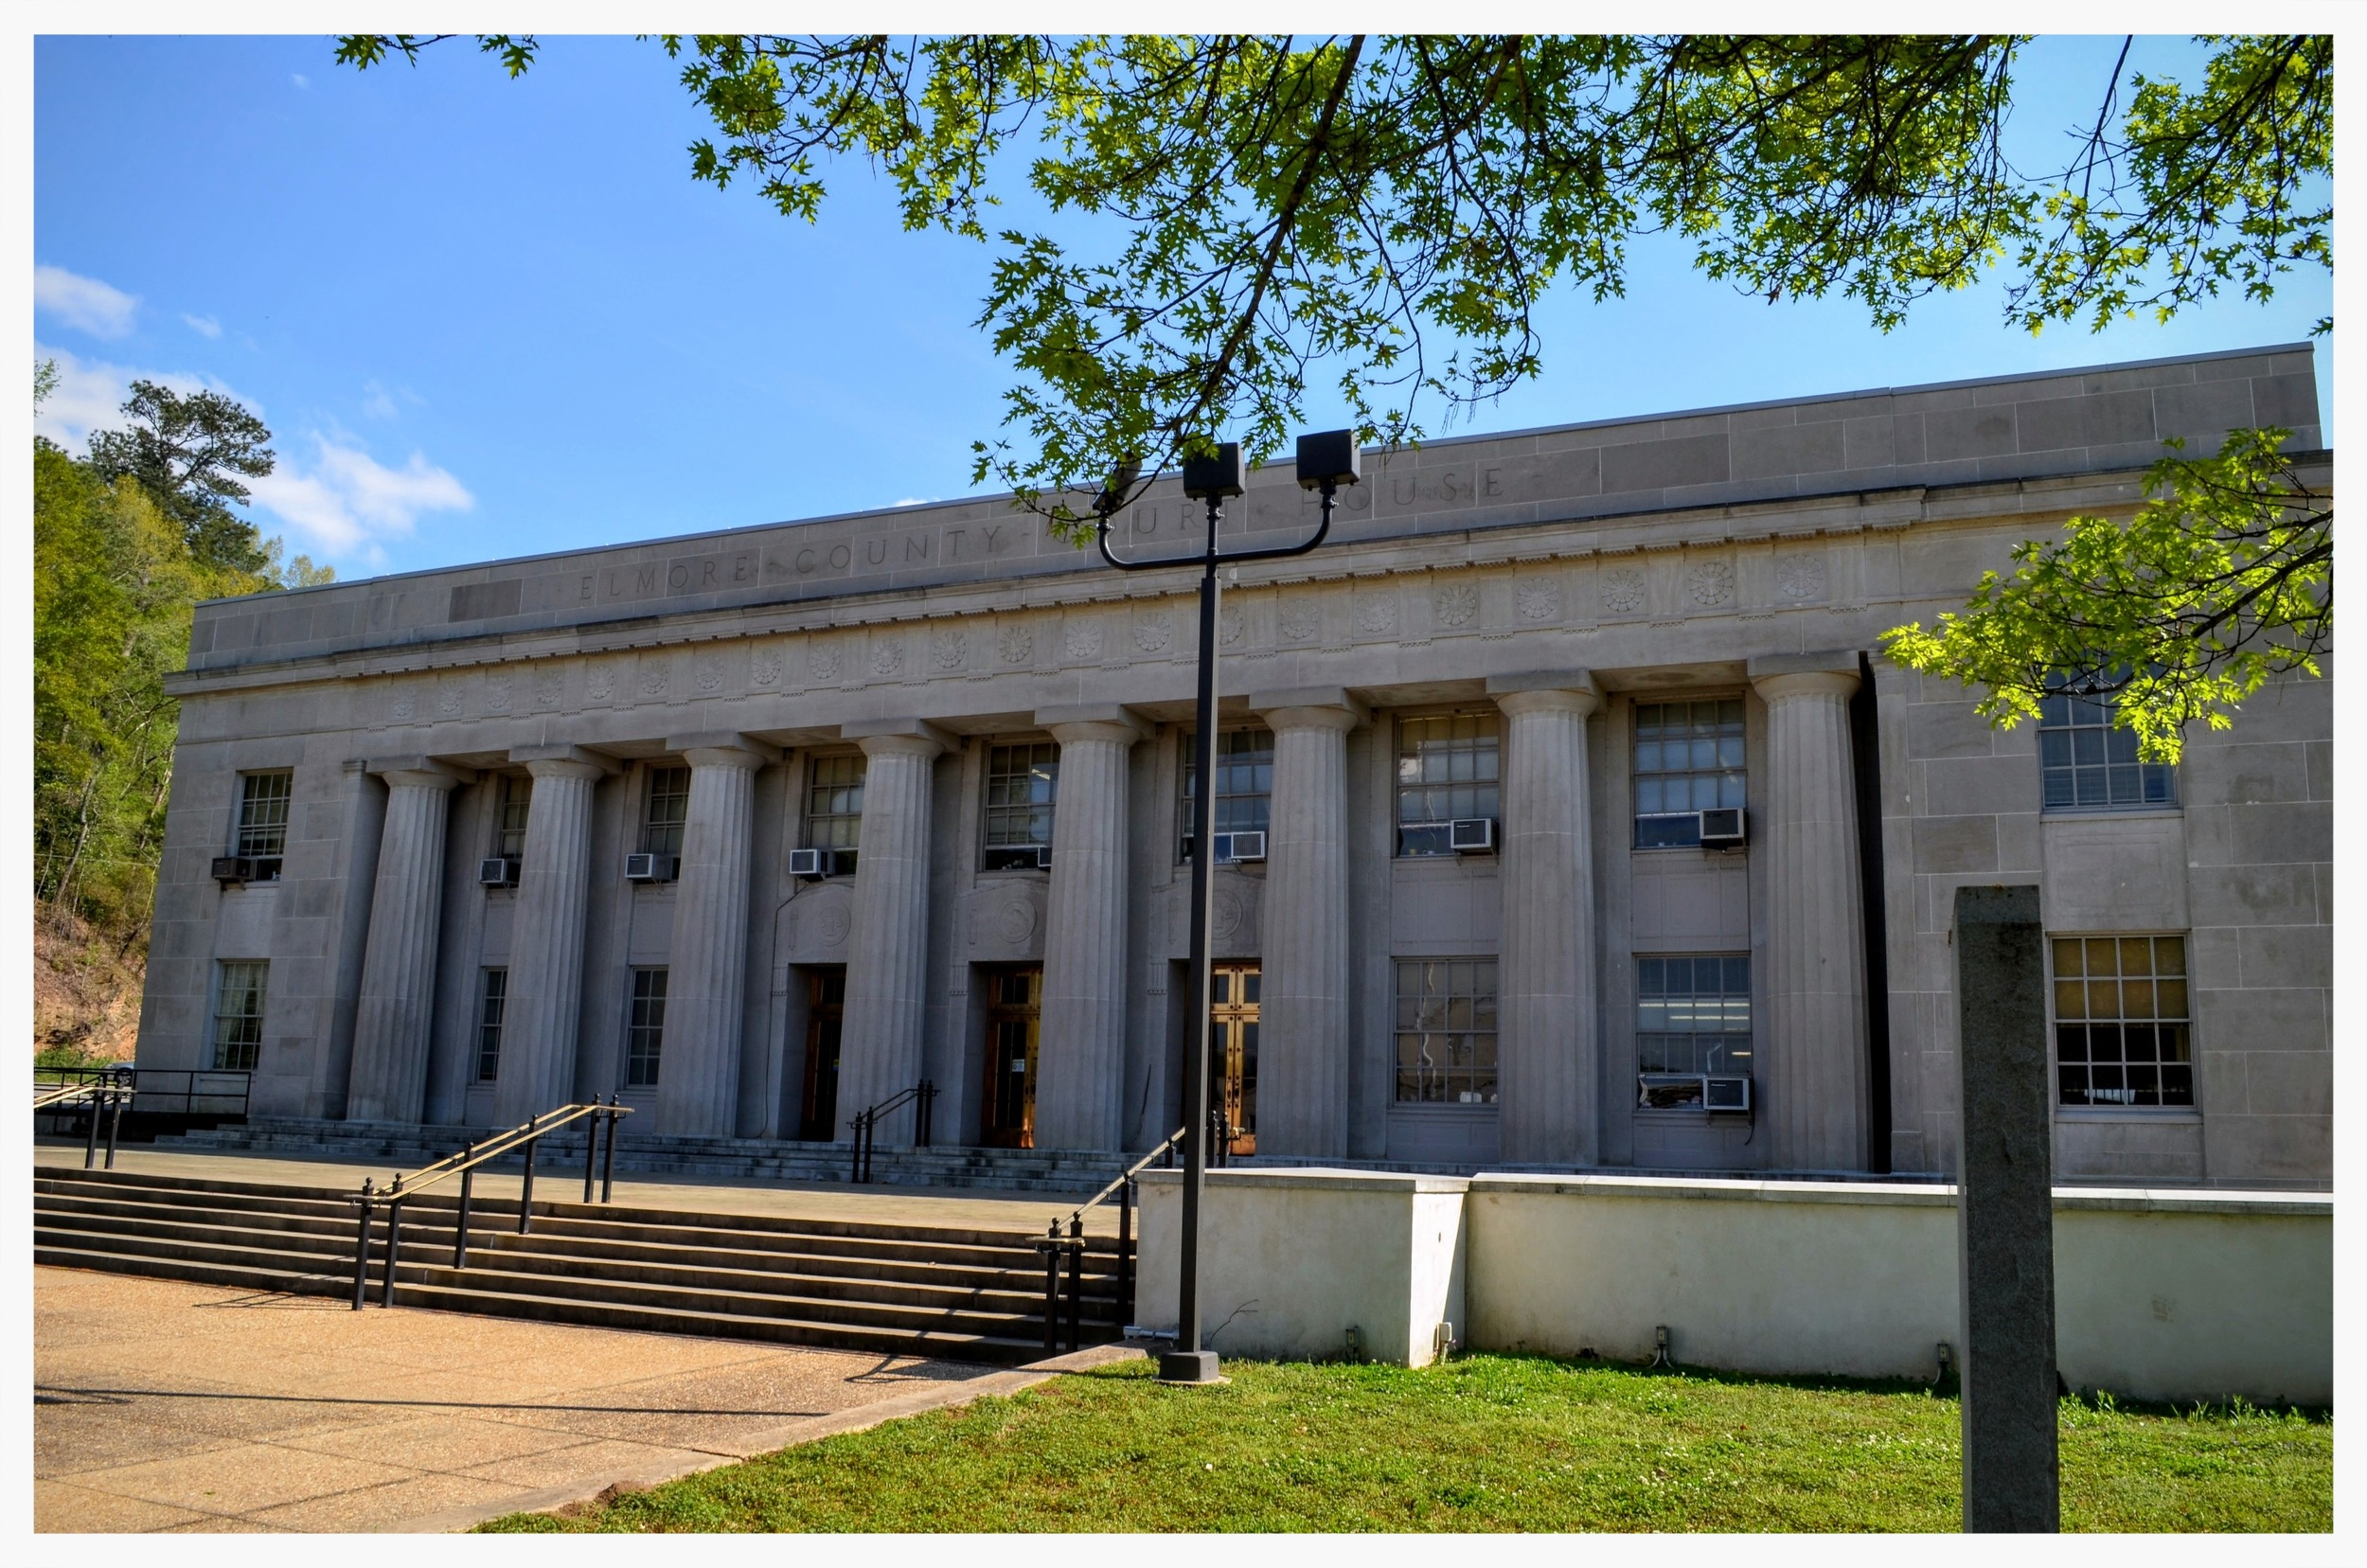 Elmore County Courthouse, site of the Wetumpka stone historical marker, Wetumpka, Elmore County, Alabama